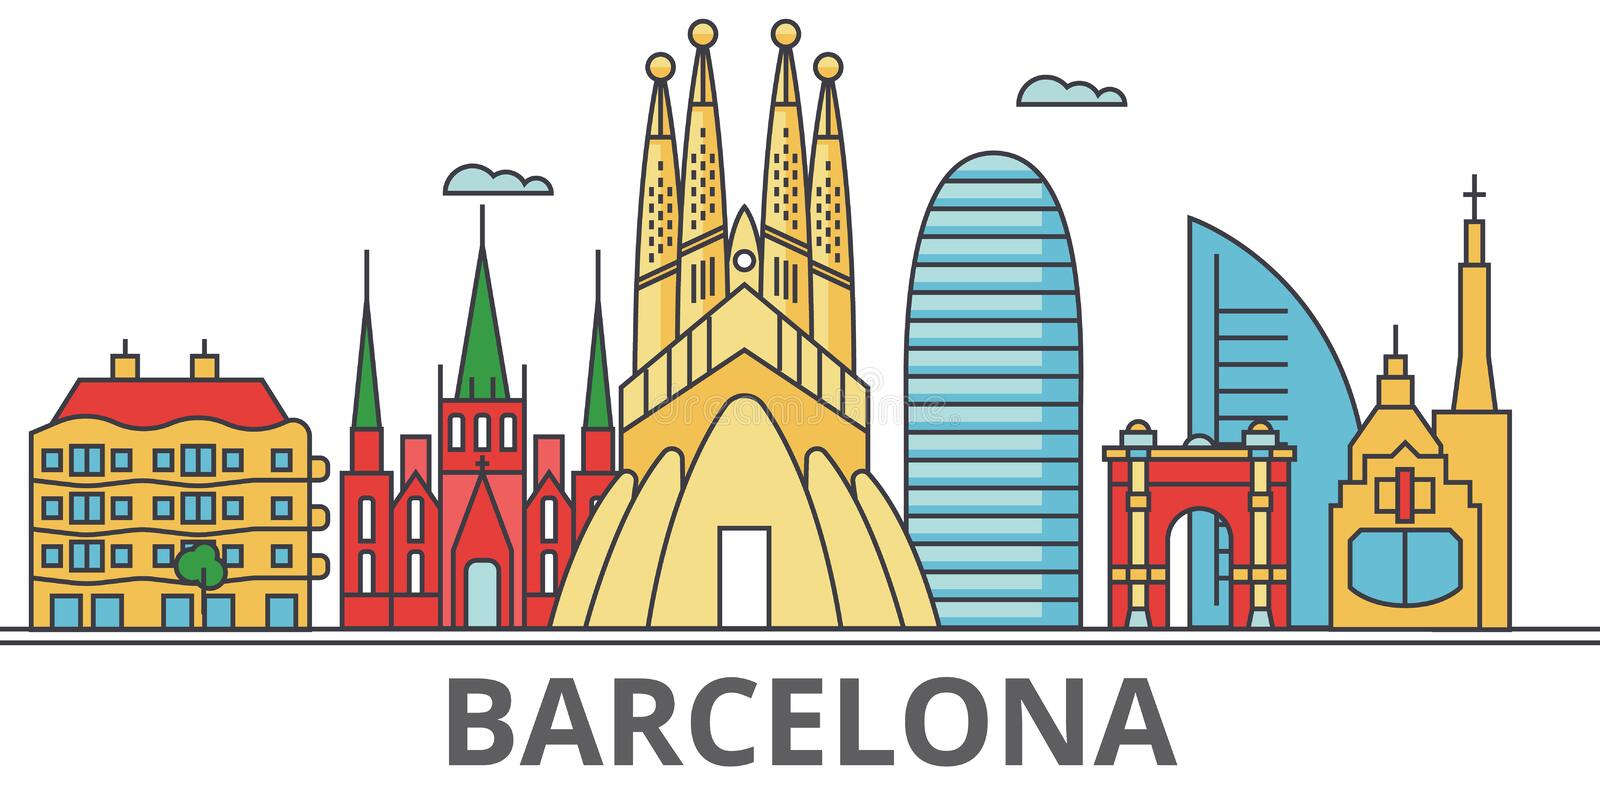 Horizon de ville de Barcelone illustration de vecteur